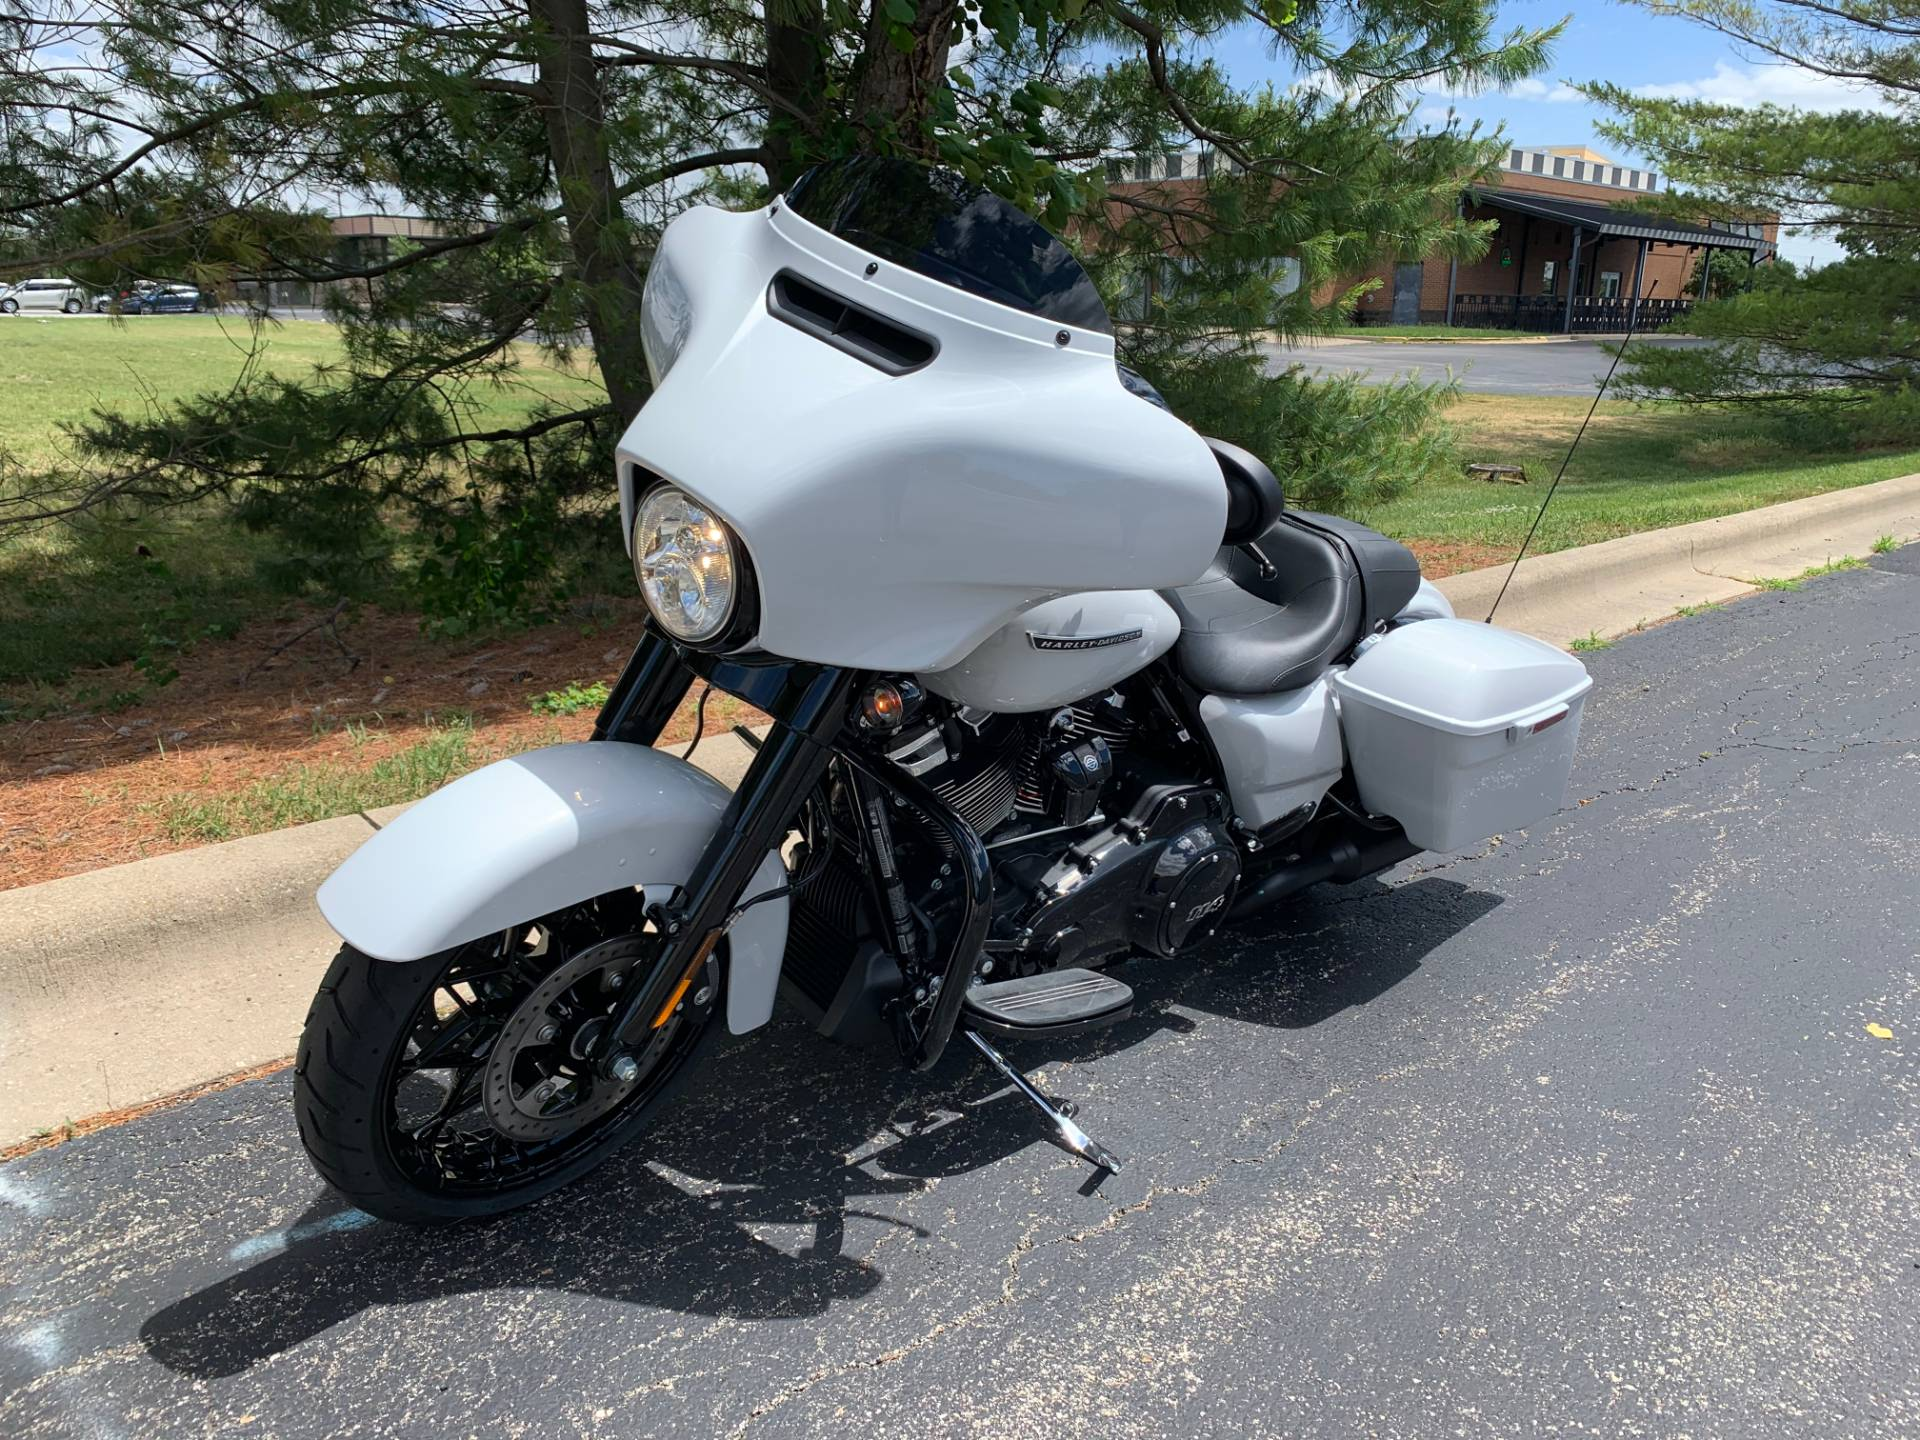 2020 Harley-Davidson Street Glide Special in Forsyth, Illinois - Photo 5